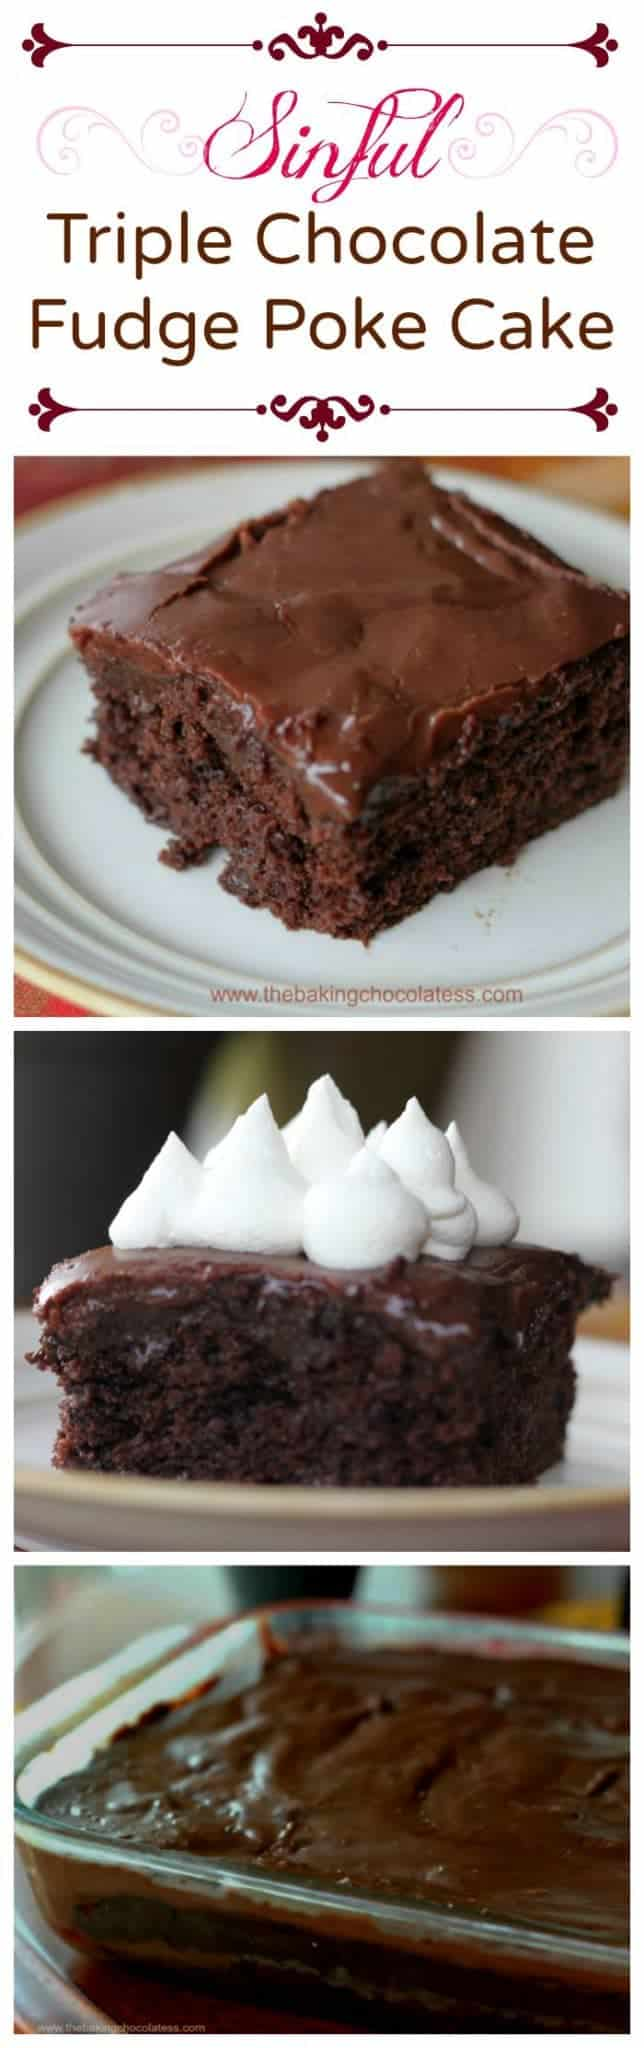 Sinful Triple Chocolate Fudge Poke Cake - Serve this delicious, gooey Sinful Triple Chocolate Poke Cake with some whipped topping or if you\'re like my husband, put it in the microwave for 20 seconds and top it with whipped cream or ice cream! Chocolately good! #triplechocolate #fudge #cake #poke cake